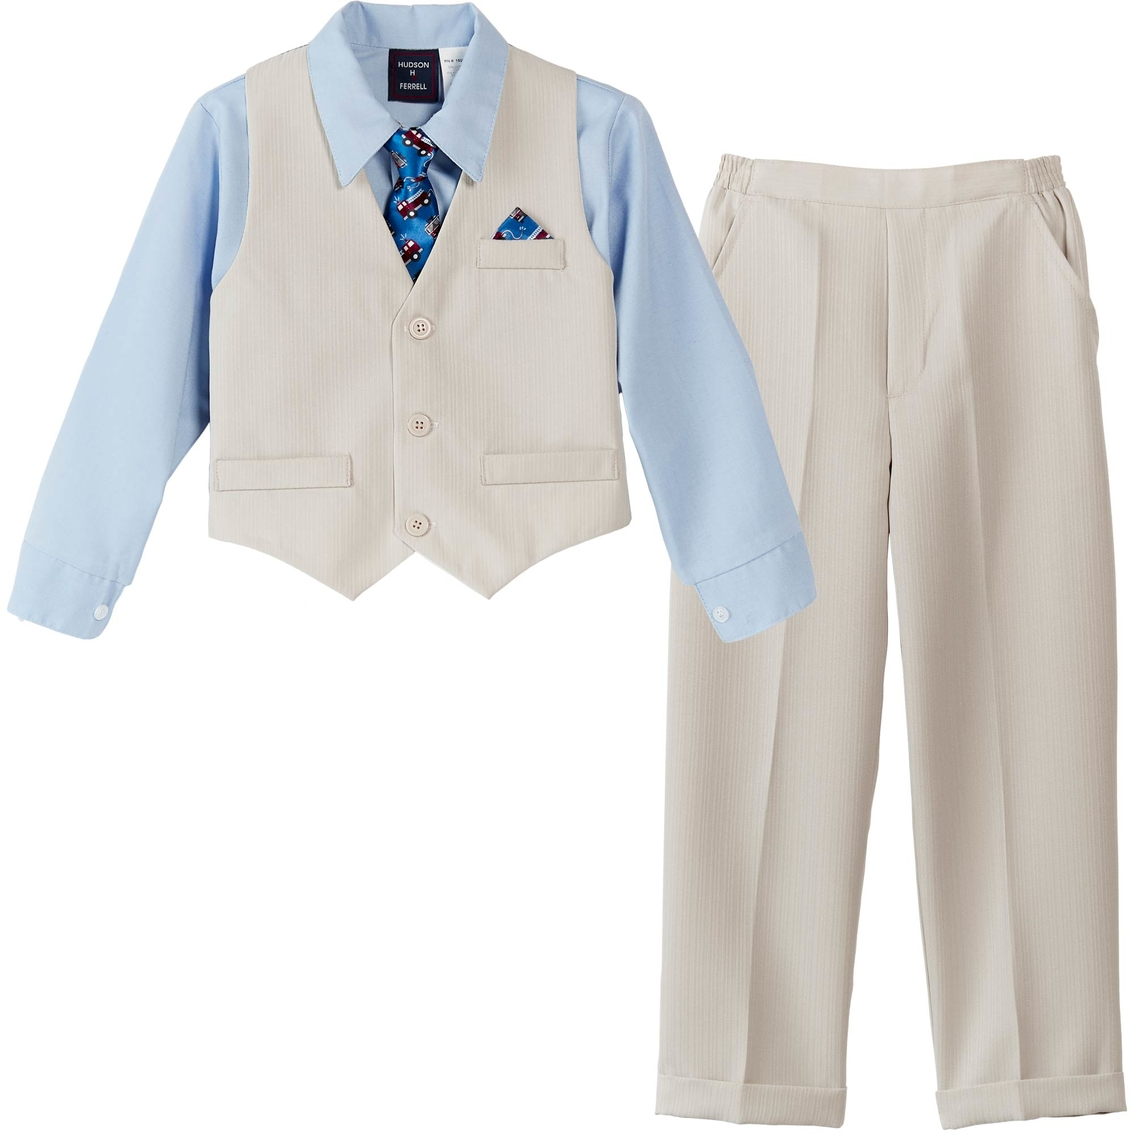 Hudson Ferrell Little Boys Special Occasion Wear   Boys 4-7x   Clothing &  Accessories   Shop The Exchange